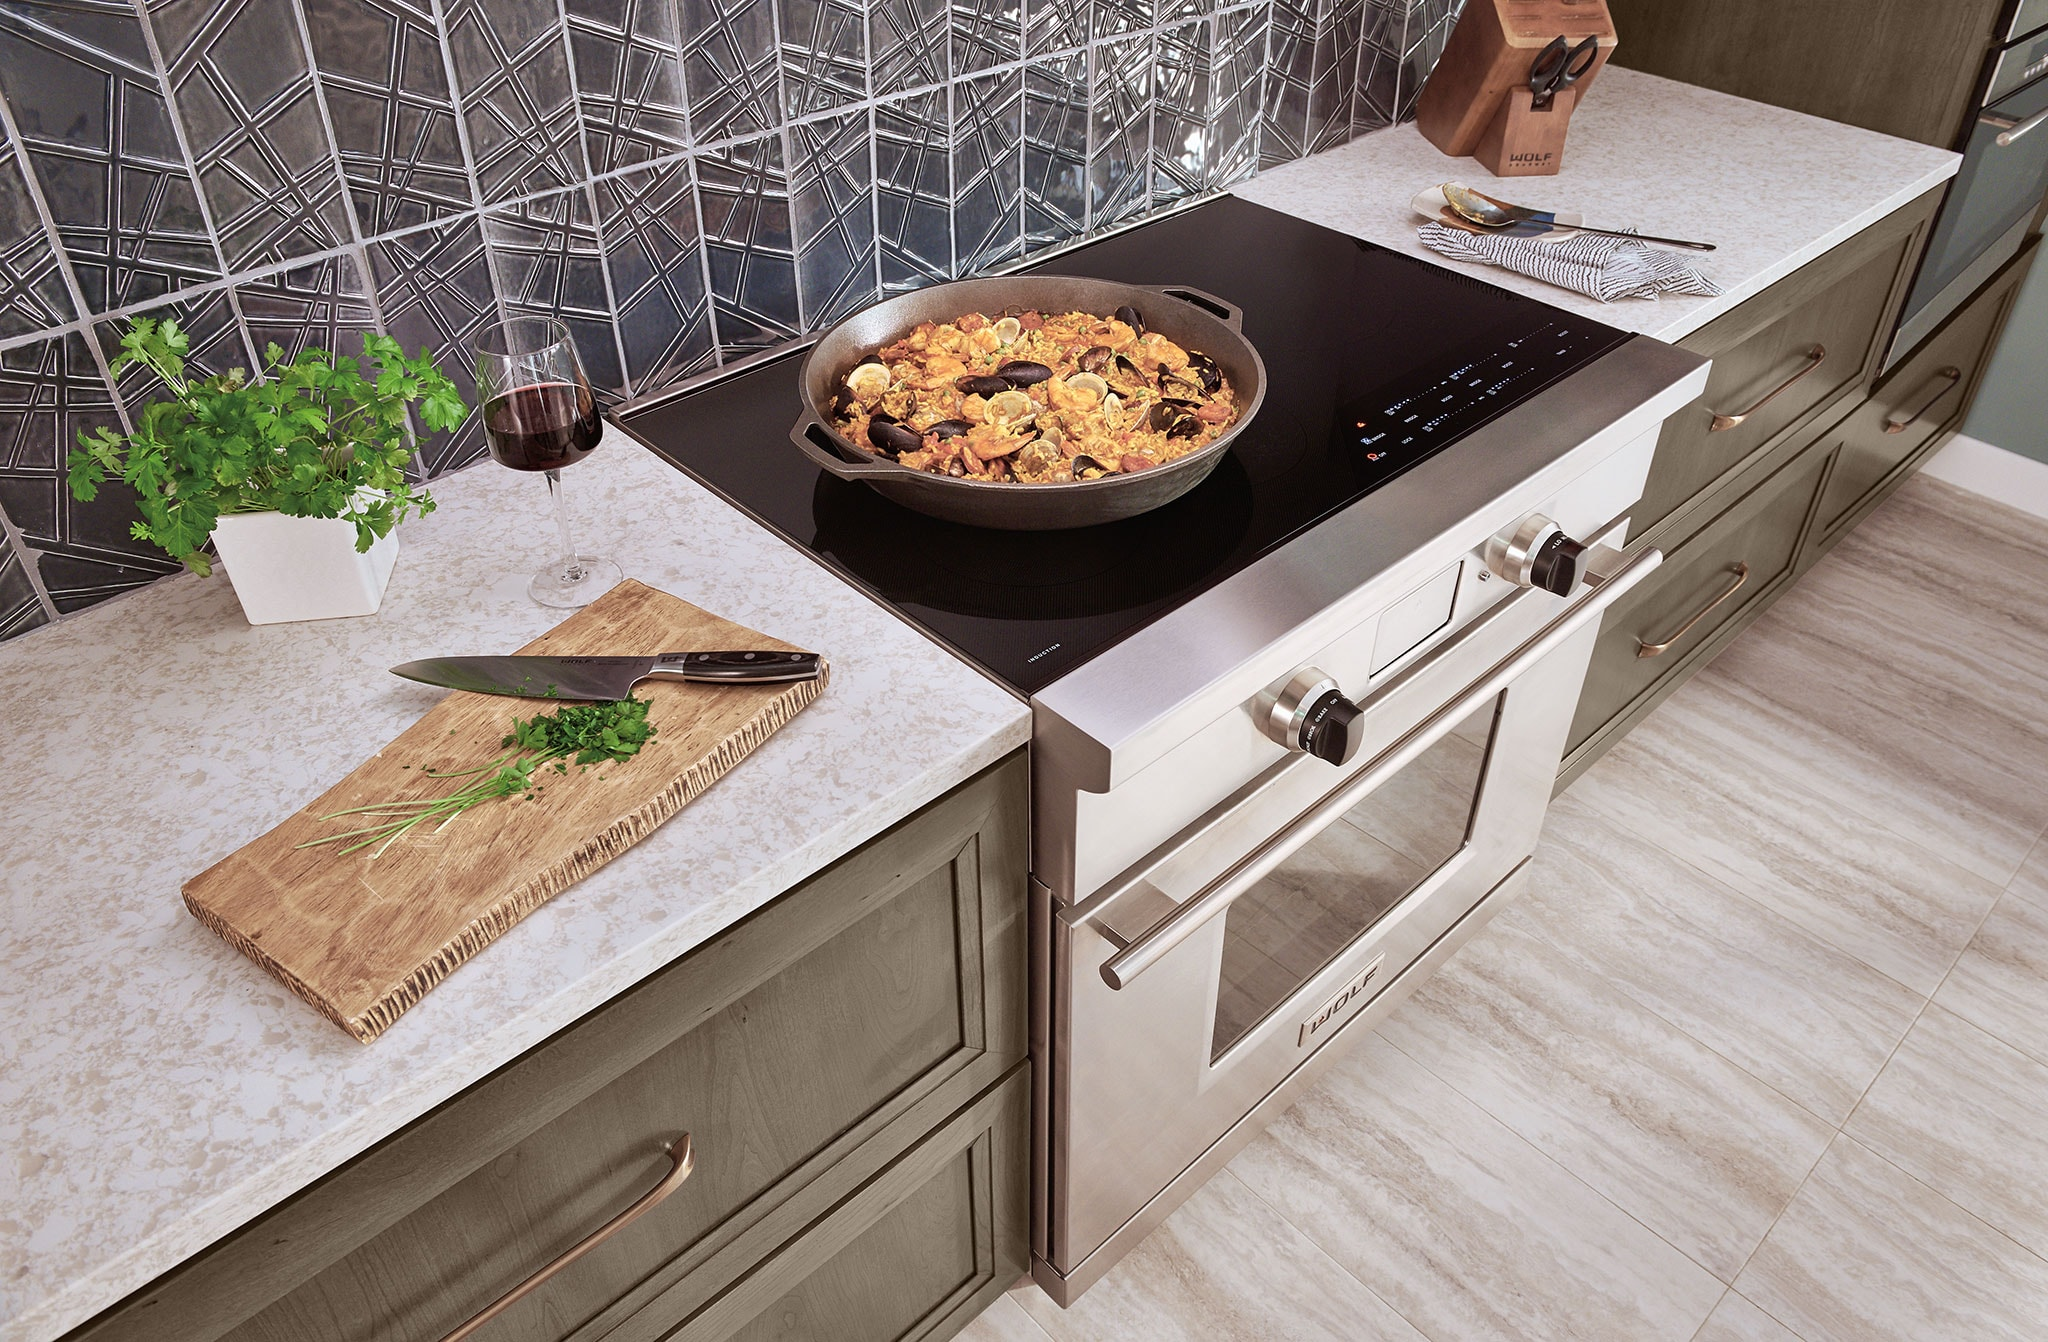 new wolf 36 inch induction range